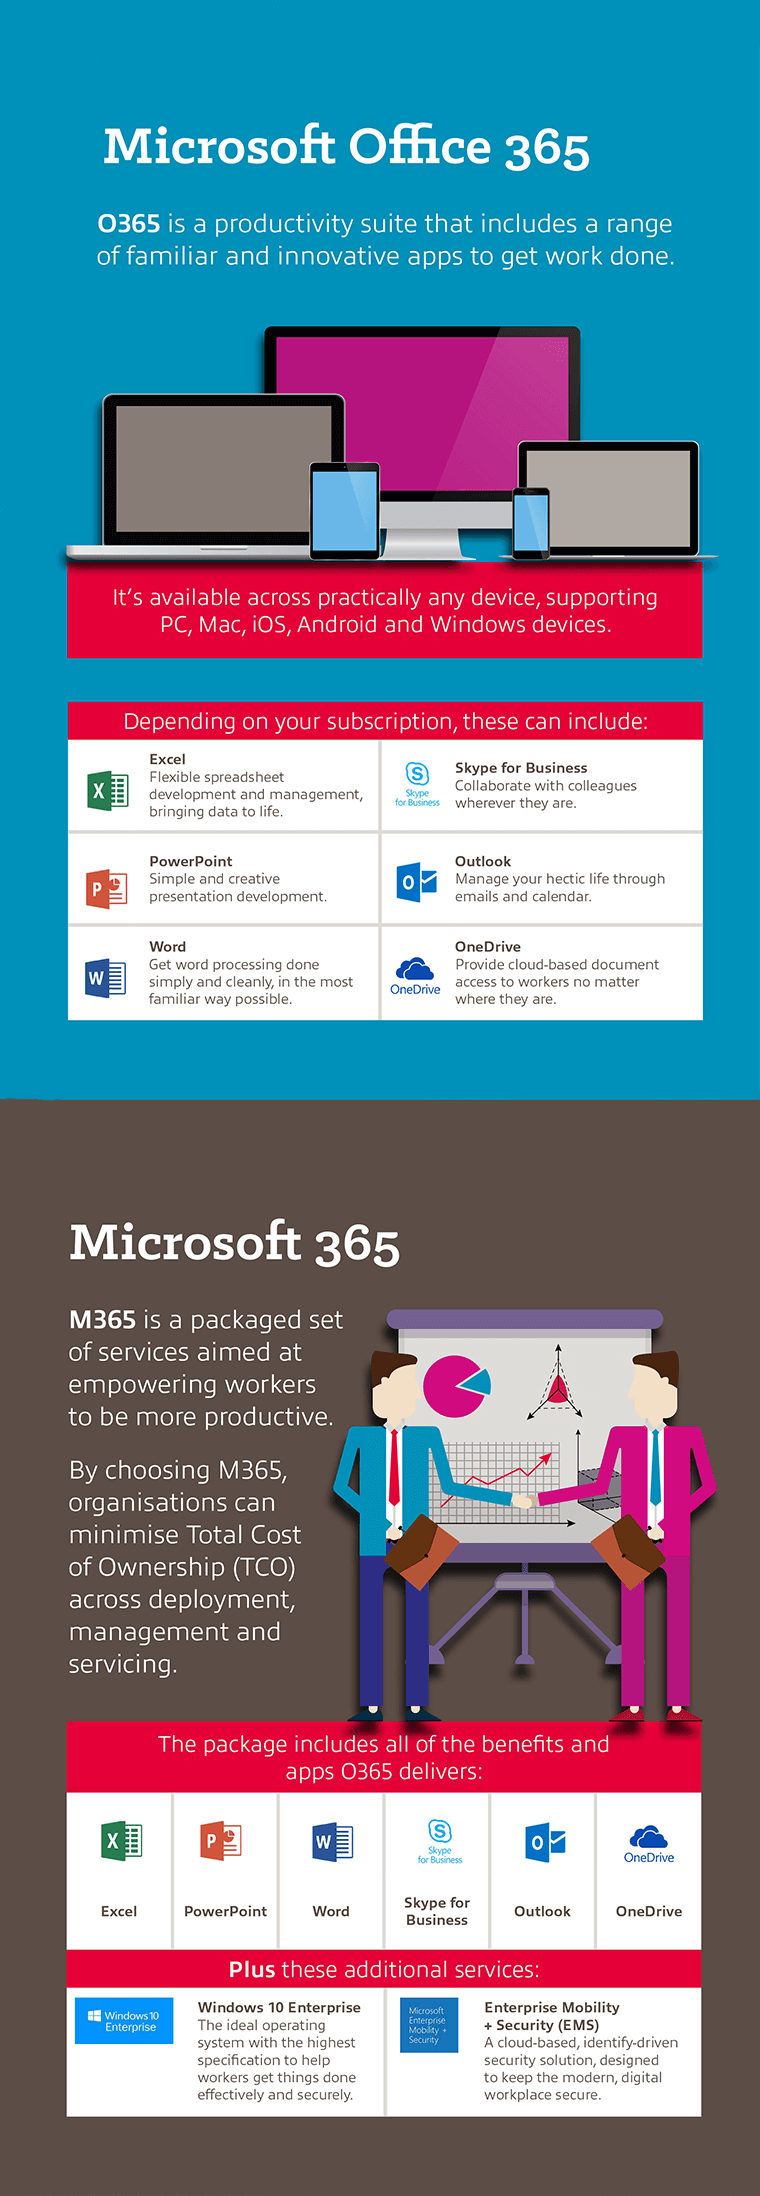 The Difference between O365 and M365